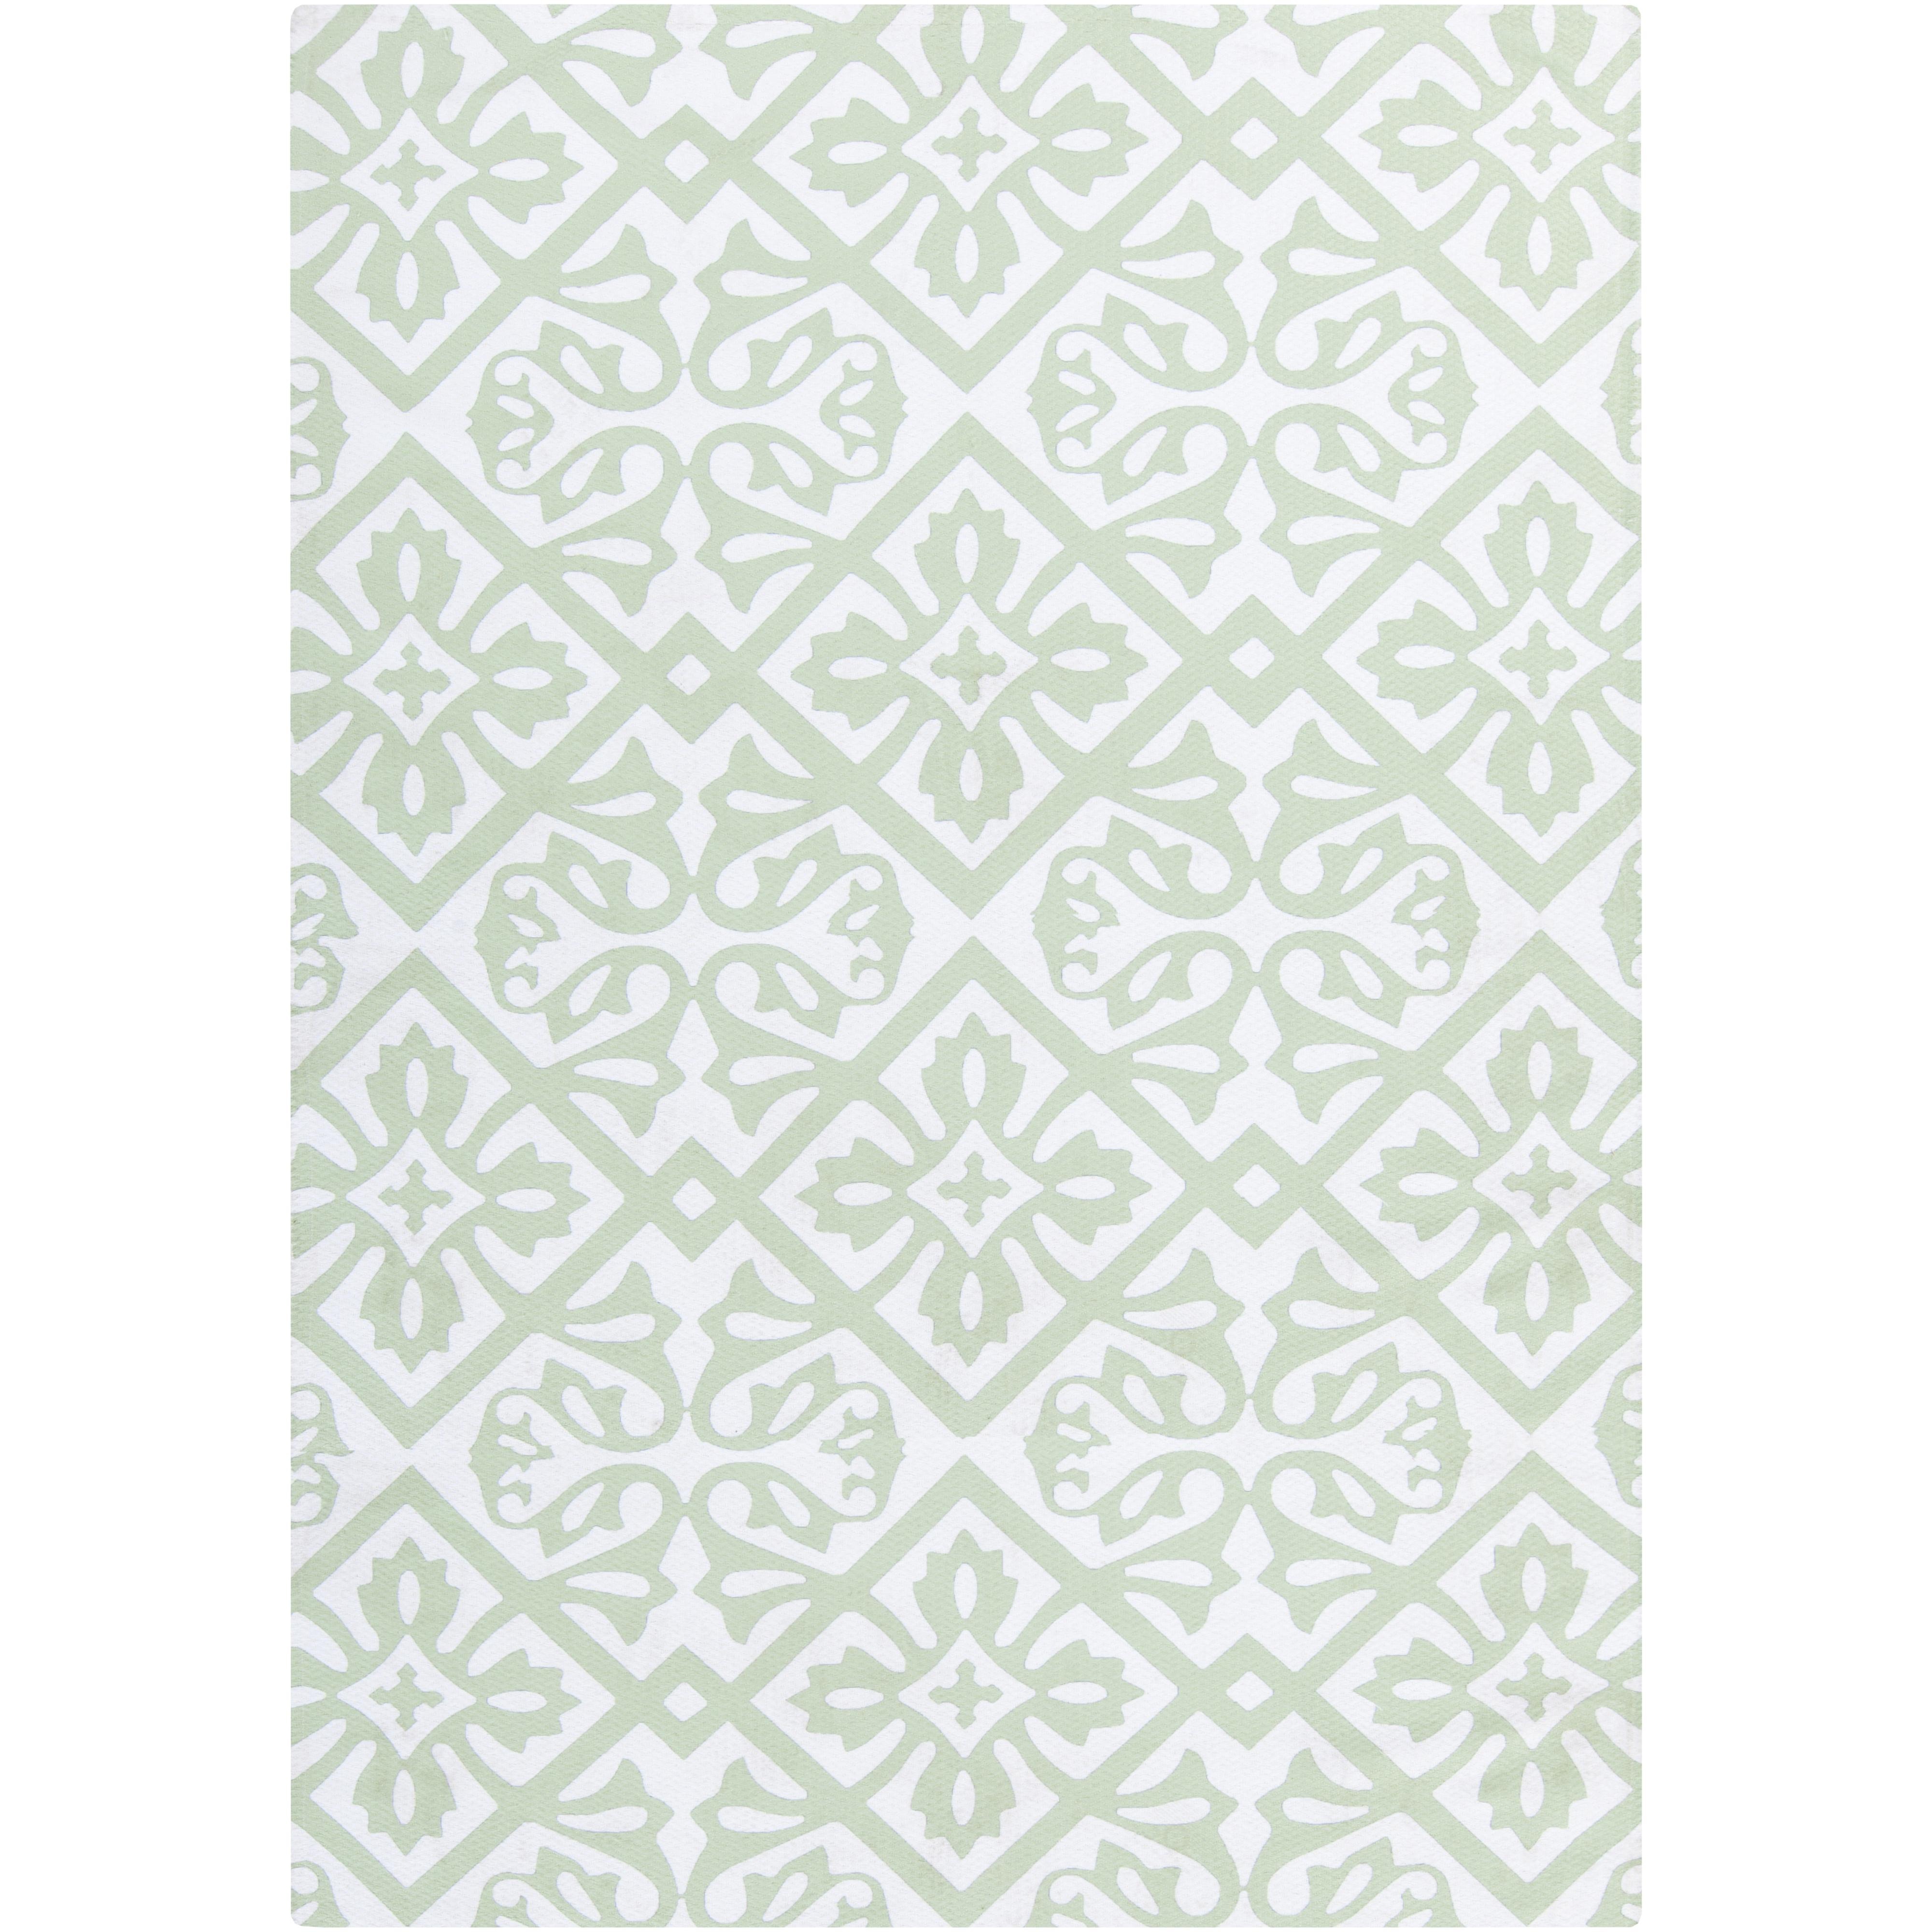 Surya Rugs Cape cod 2' x 3' - Item Number: CCD1011-23